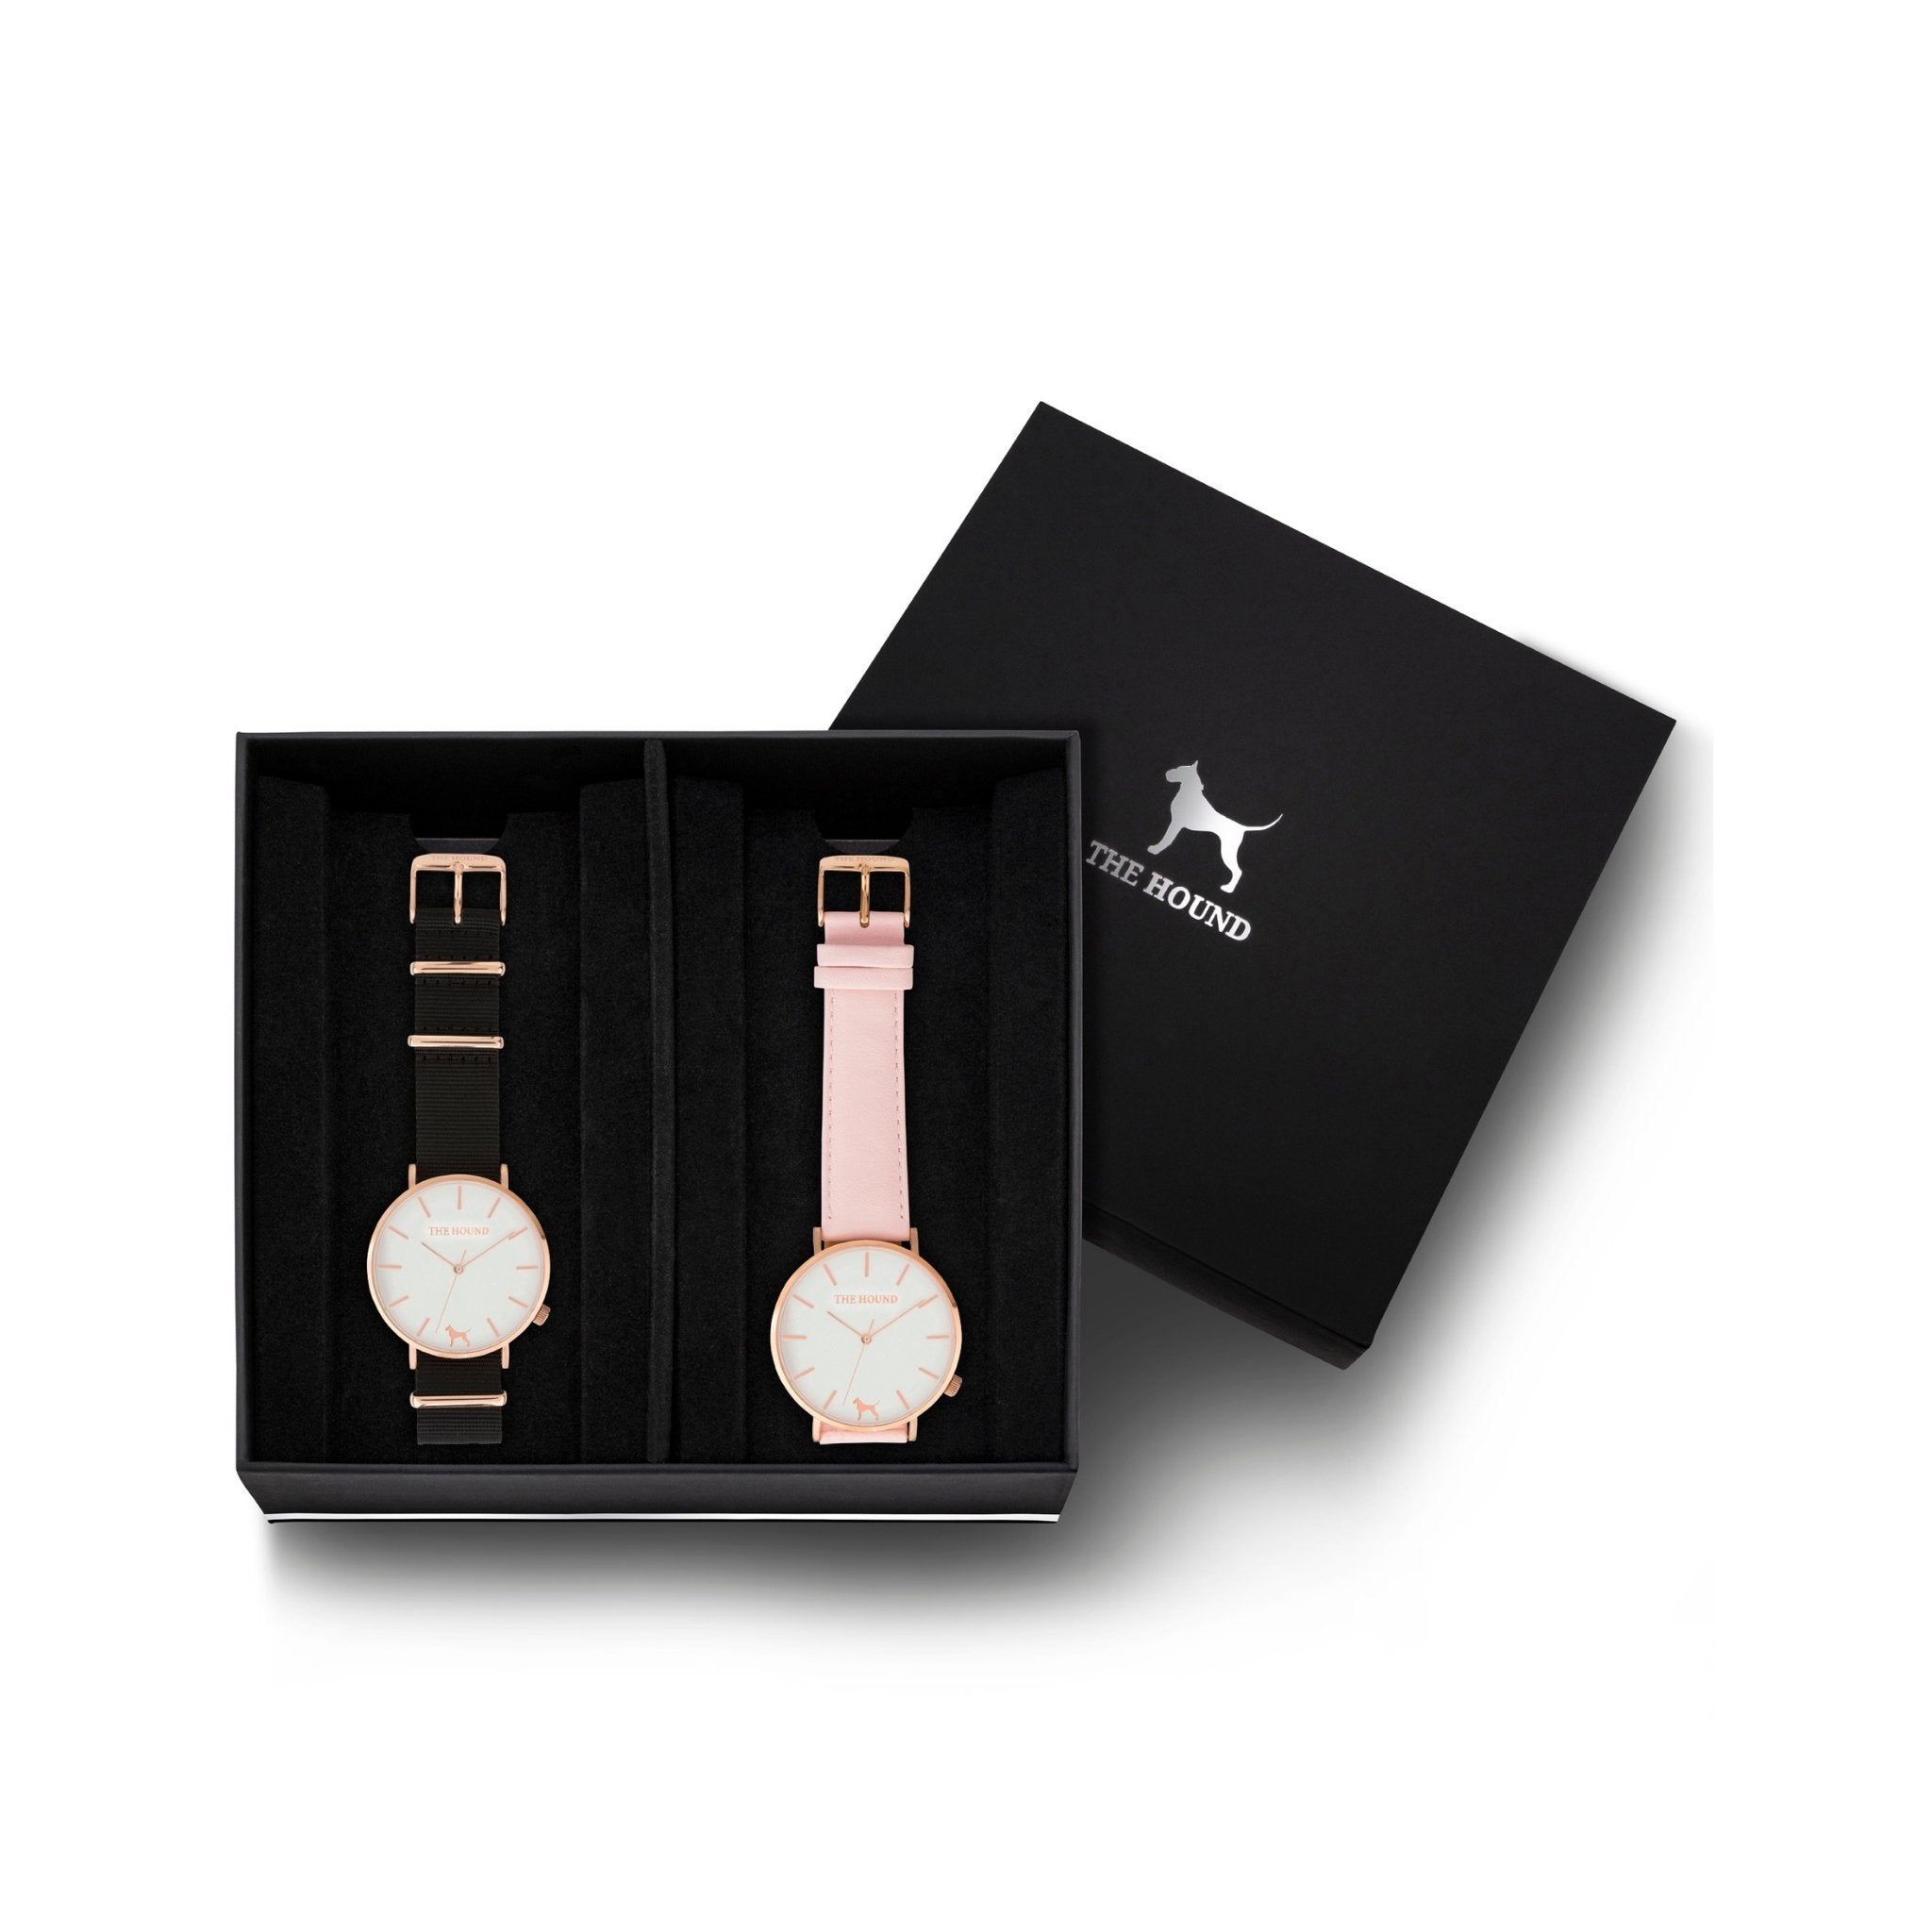 Custom gift set - Rose gold and white watch with black nato band and a rose gold and white watch with stitched blush pink genuine leather band